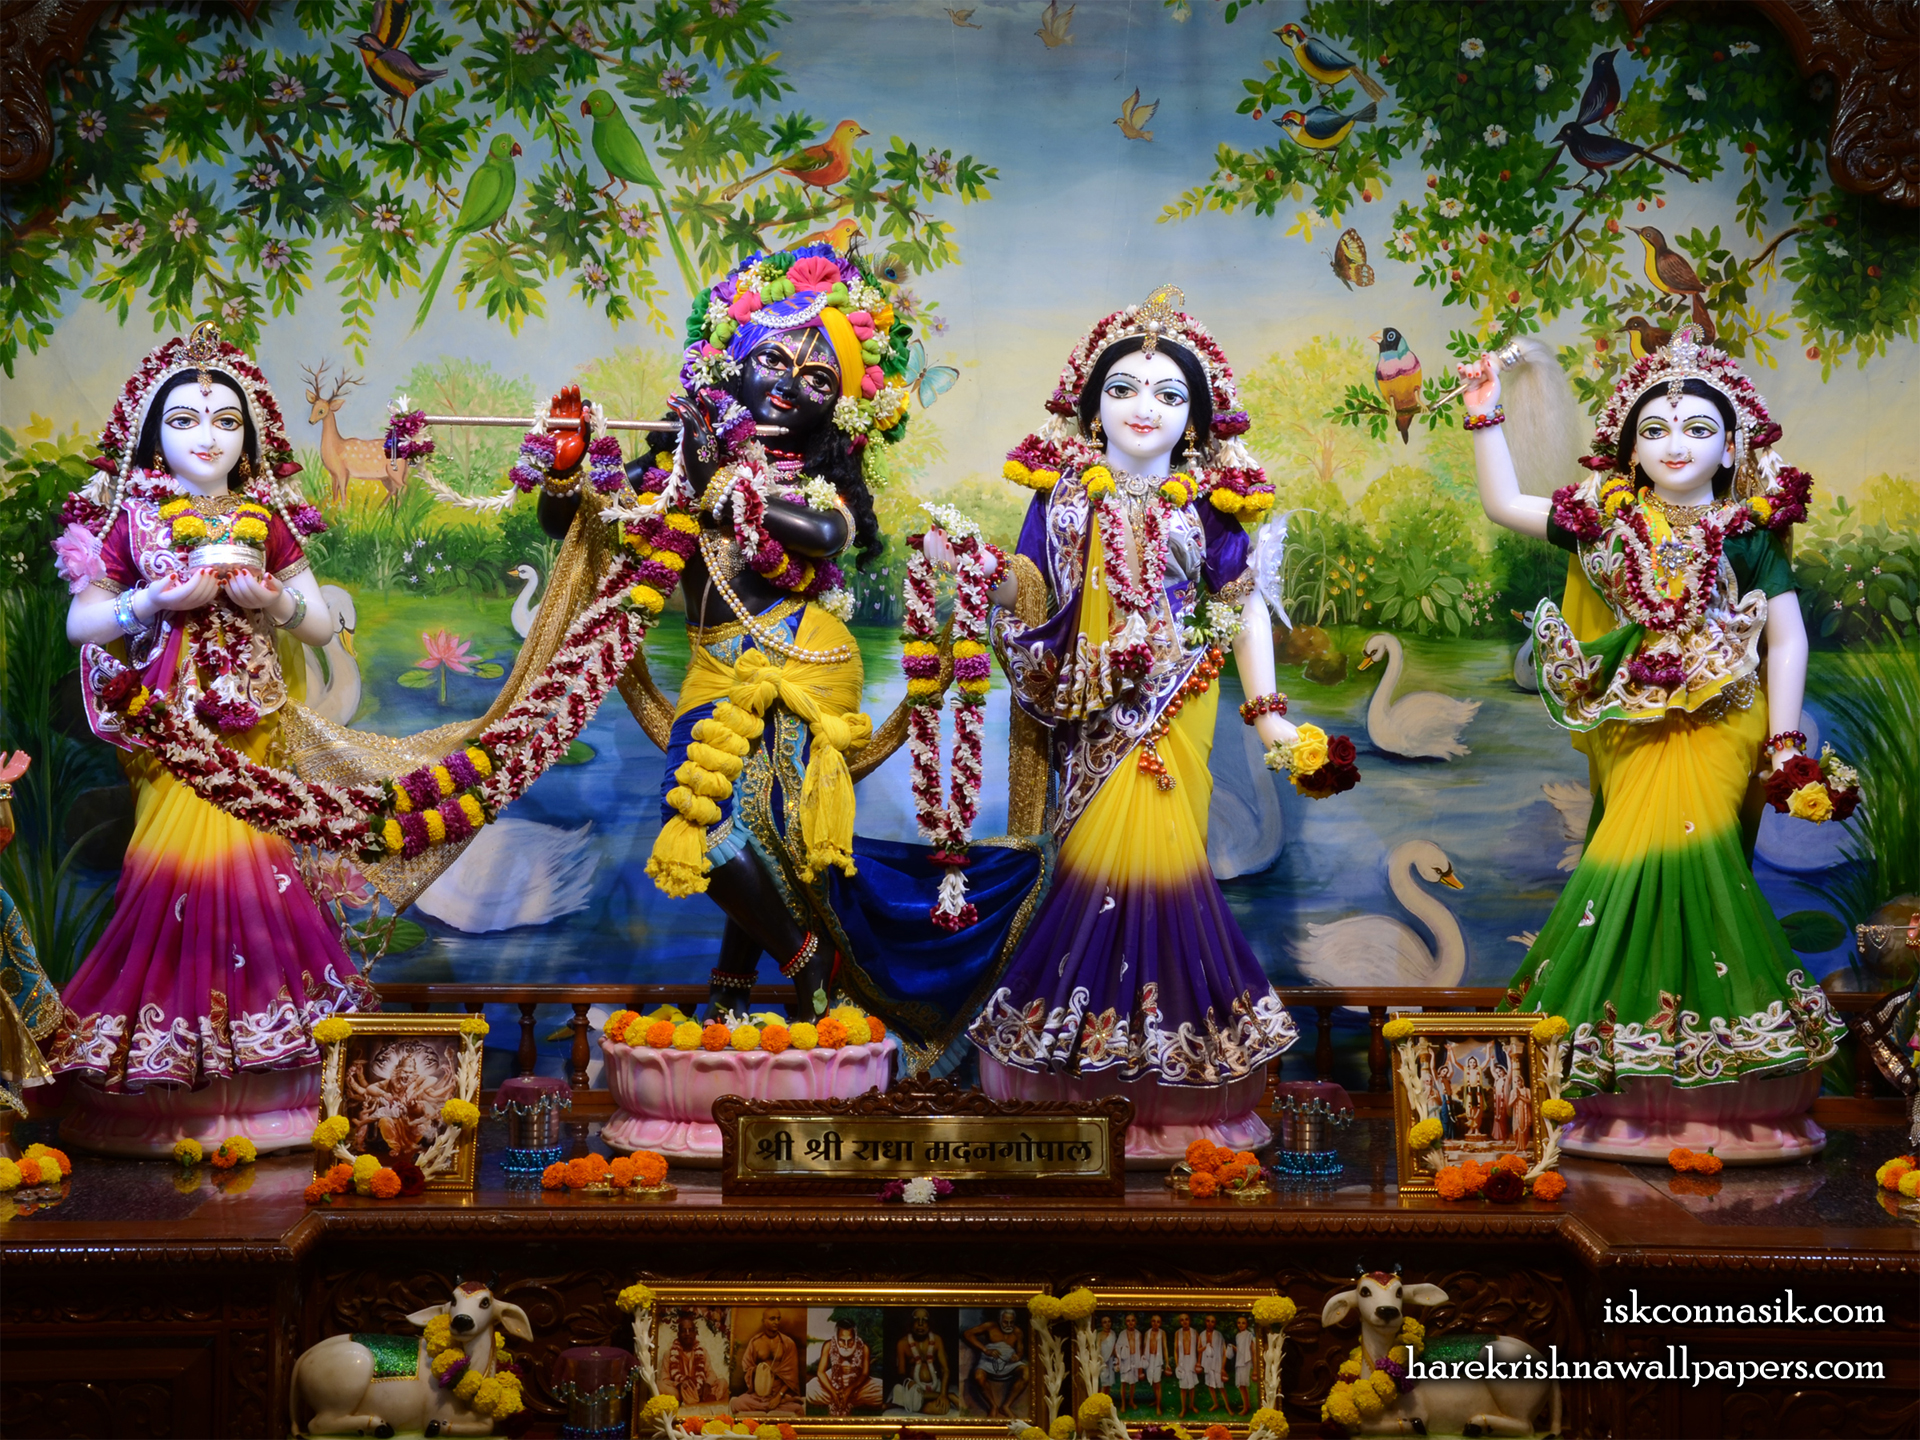 Sri Sri Radha Madan Gopal Lalita Vishakha Wallpaper (001) Size 1920x1440 Download